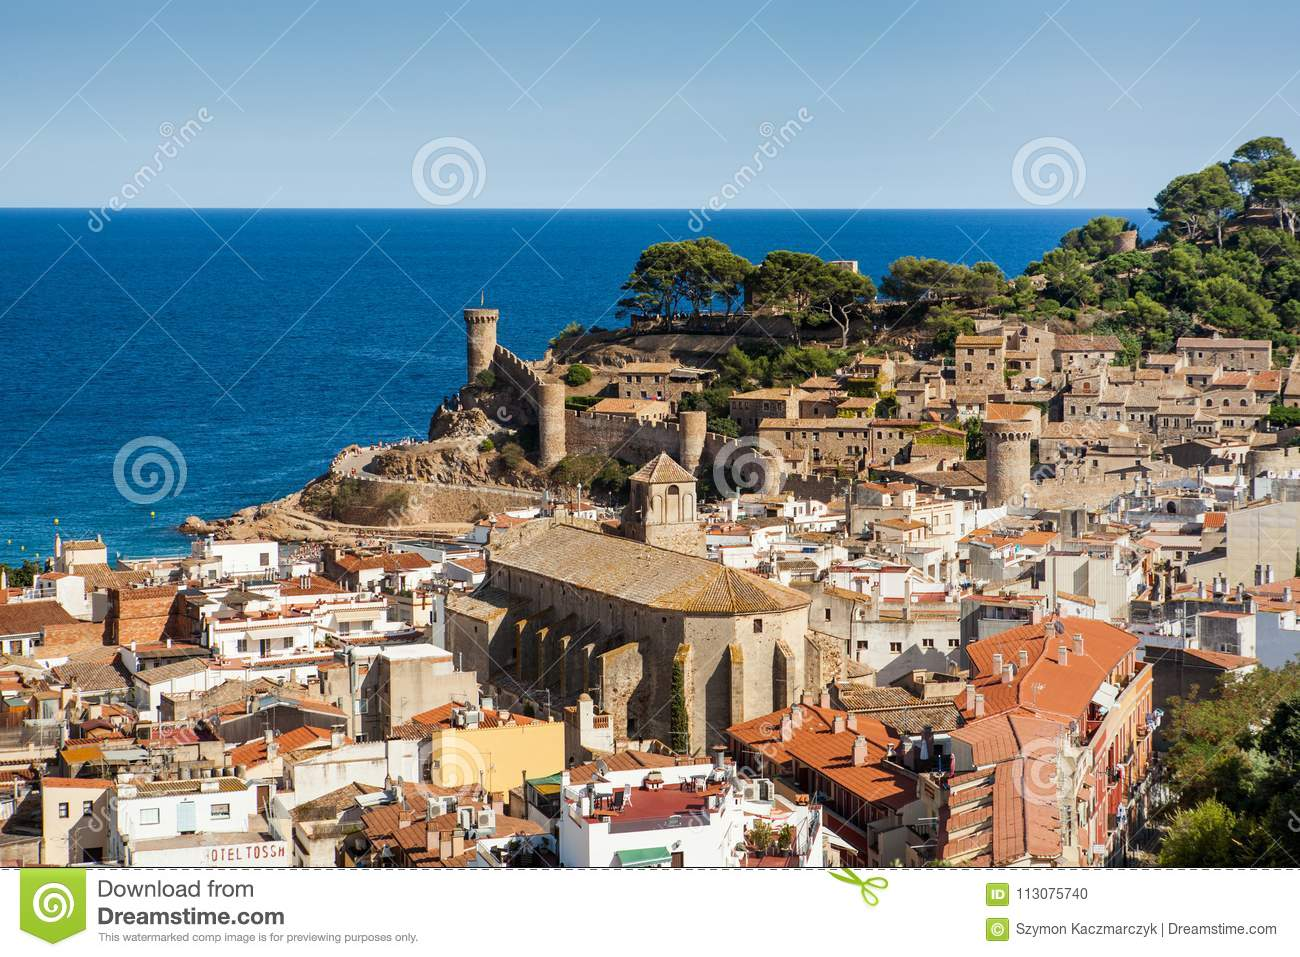 Top View Of The Town And Castle In Tossa De Mar City On The Costa